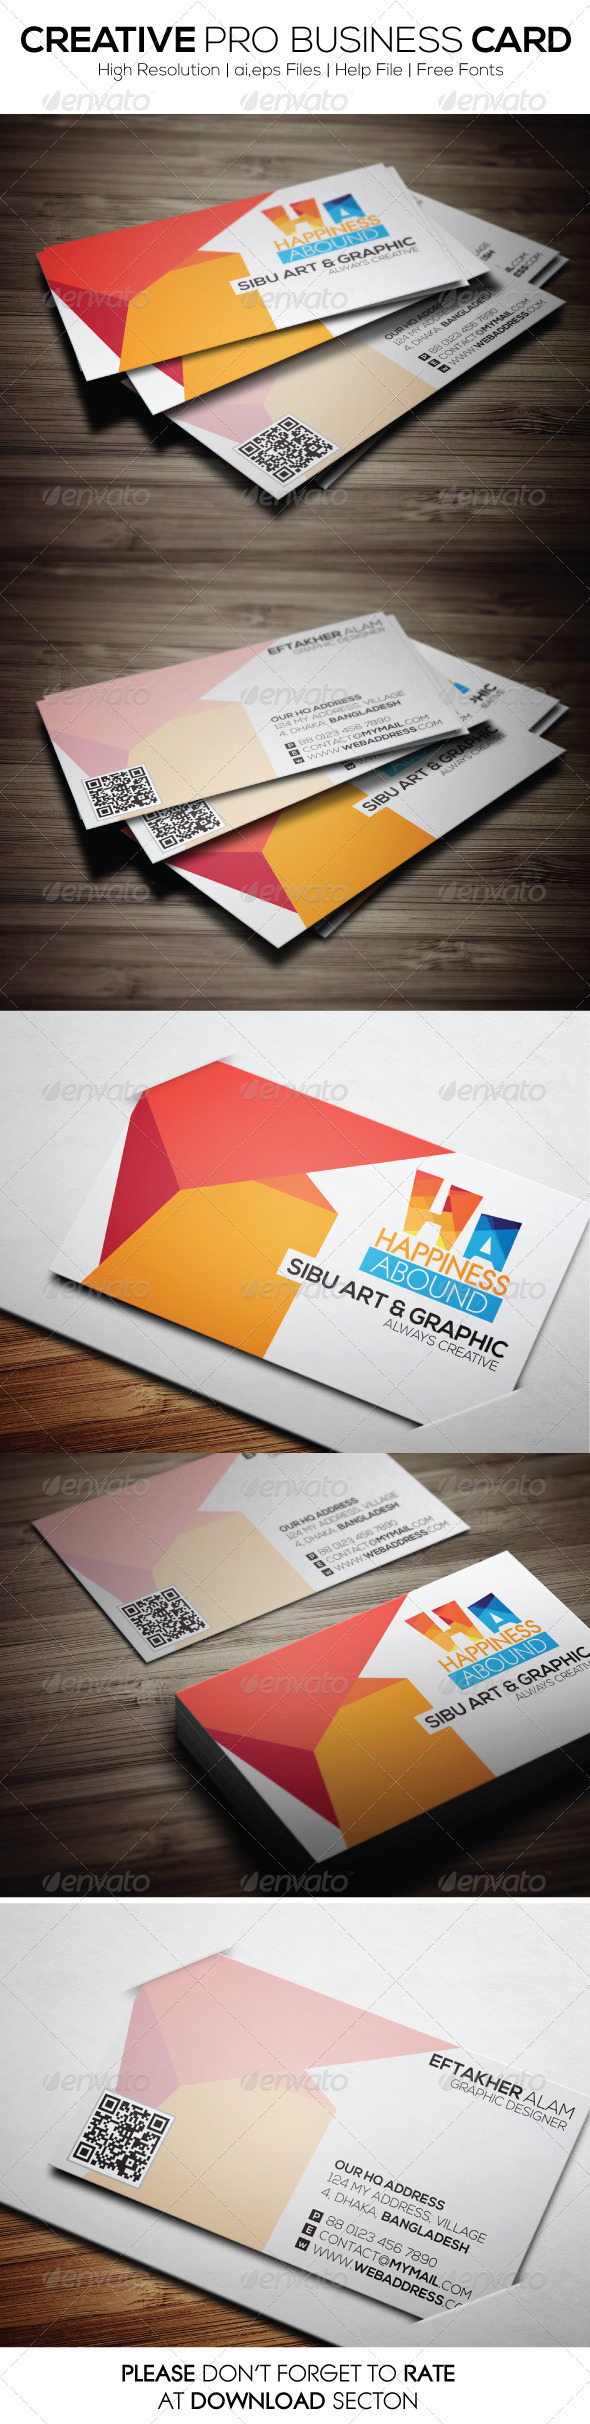 Creative Pro Business Card - Creative Business Cards